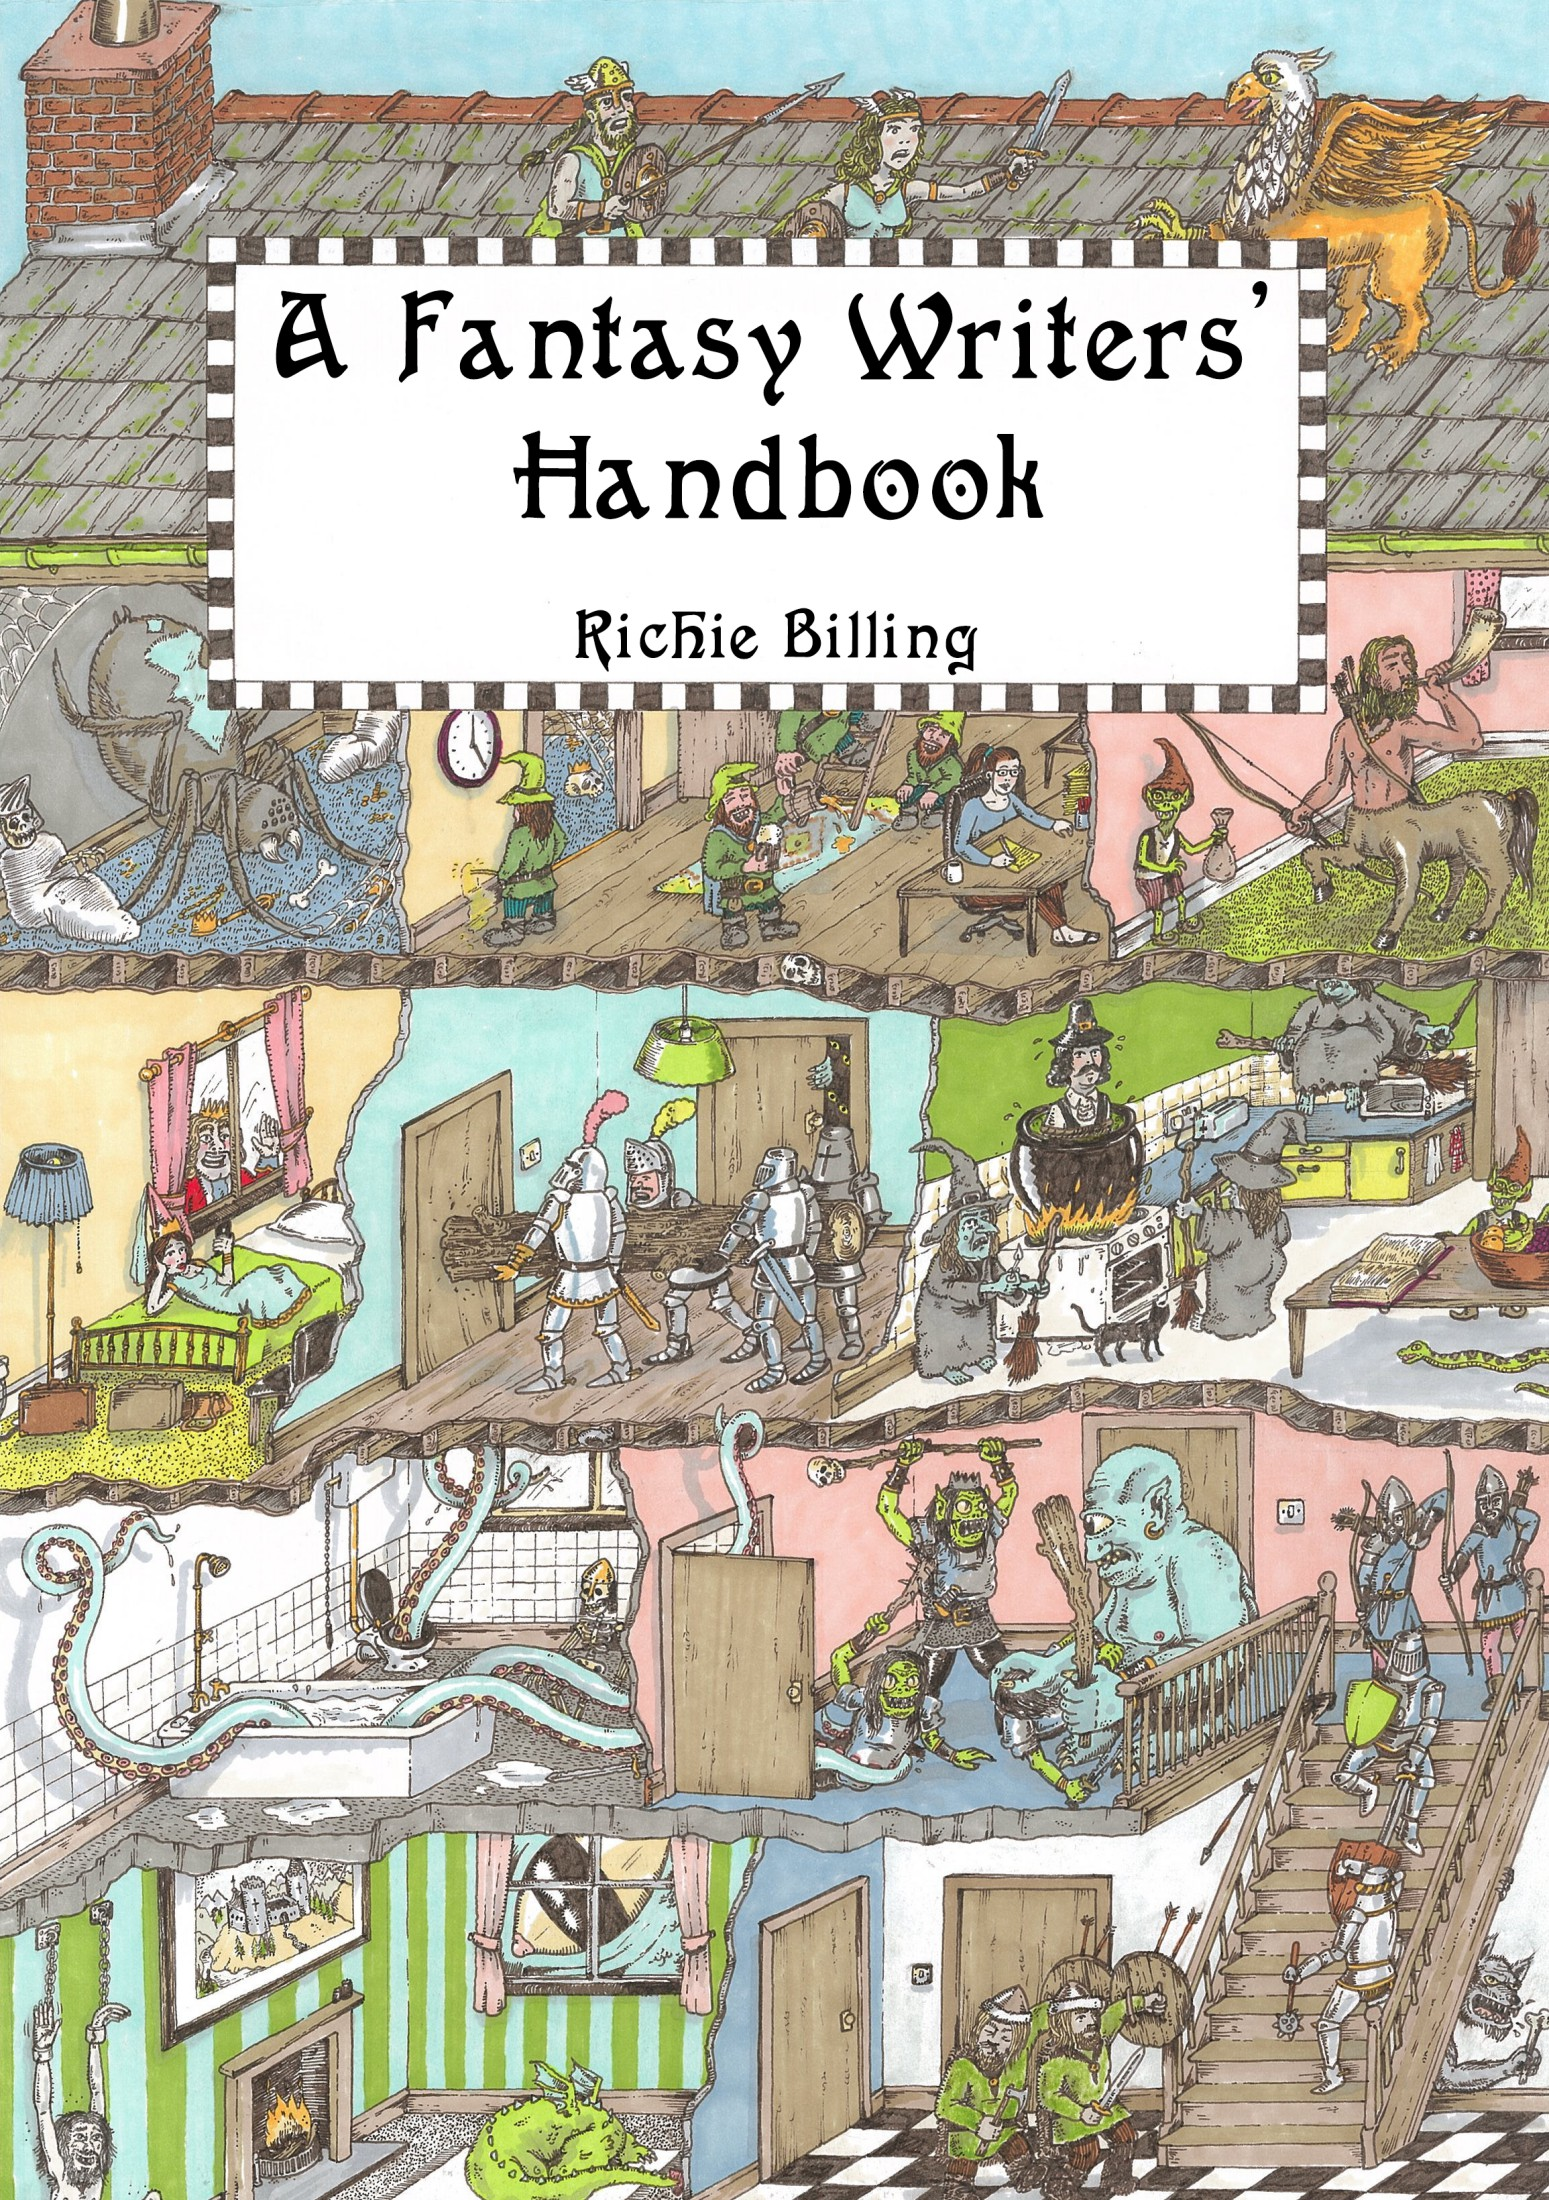 [Book Review] A Fantasy Writers' Handbook by Richie Billing – A Guide To Writing Fantasy